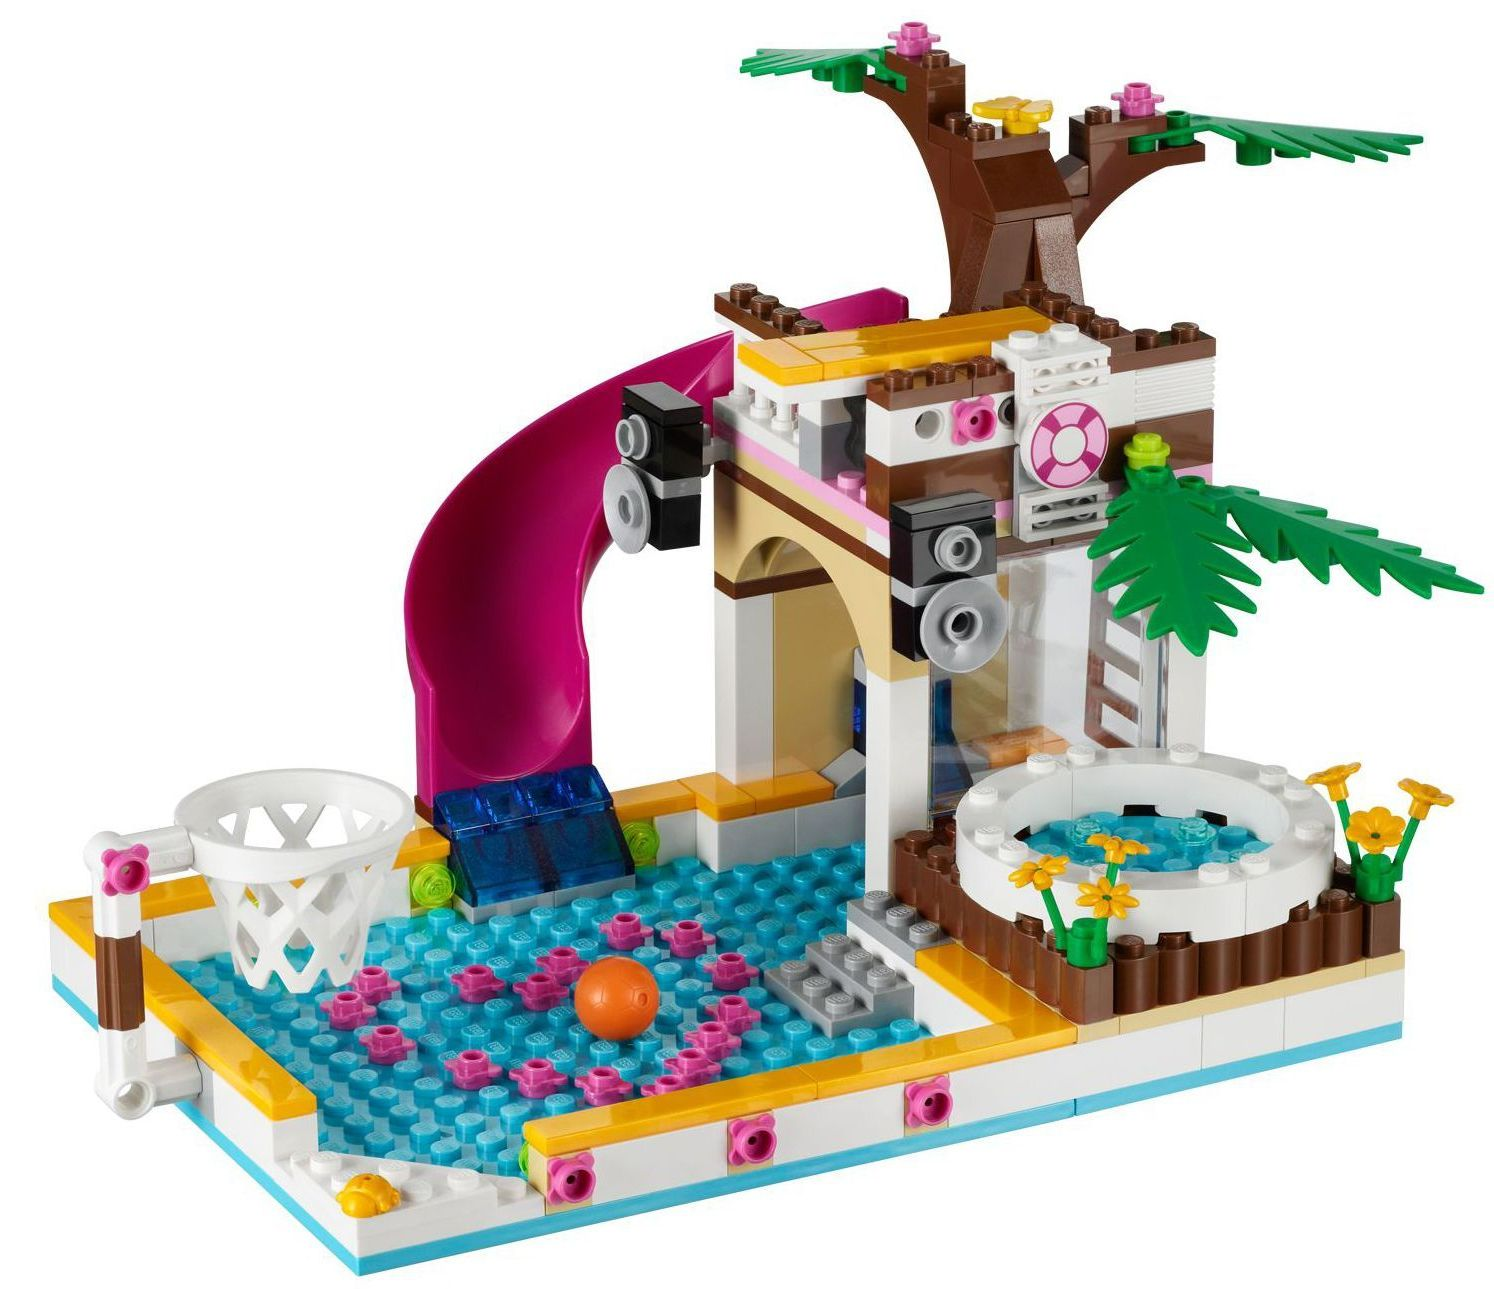 Lego Friends Heartlake City Pool 41008 Check Price Free Shipping Le ...